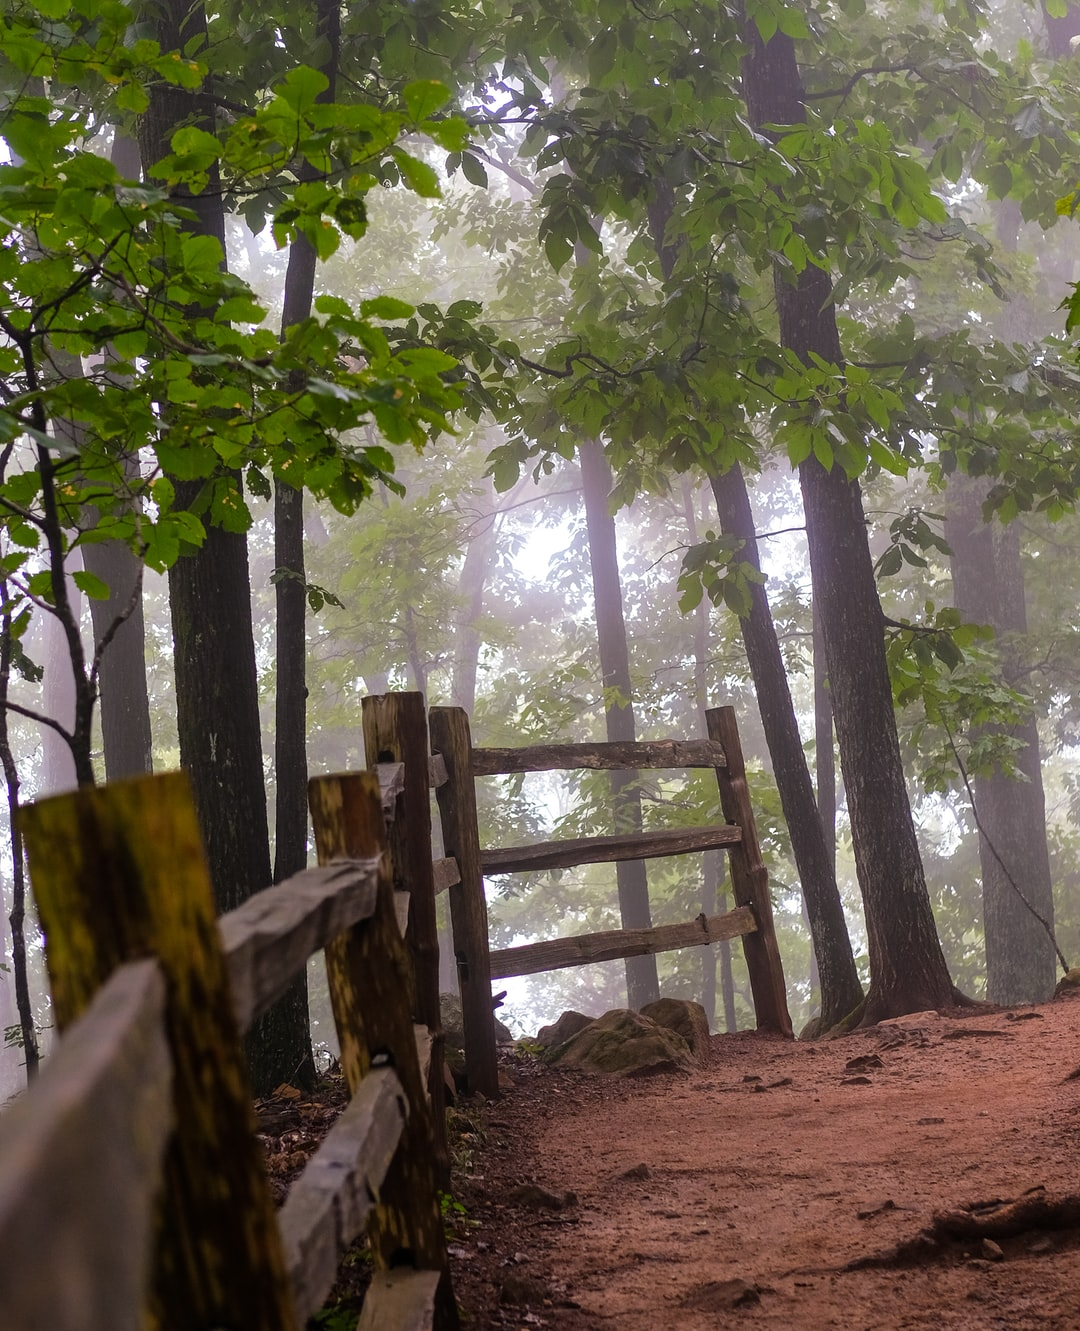 Mountain trail with fence foggy